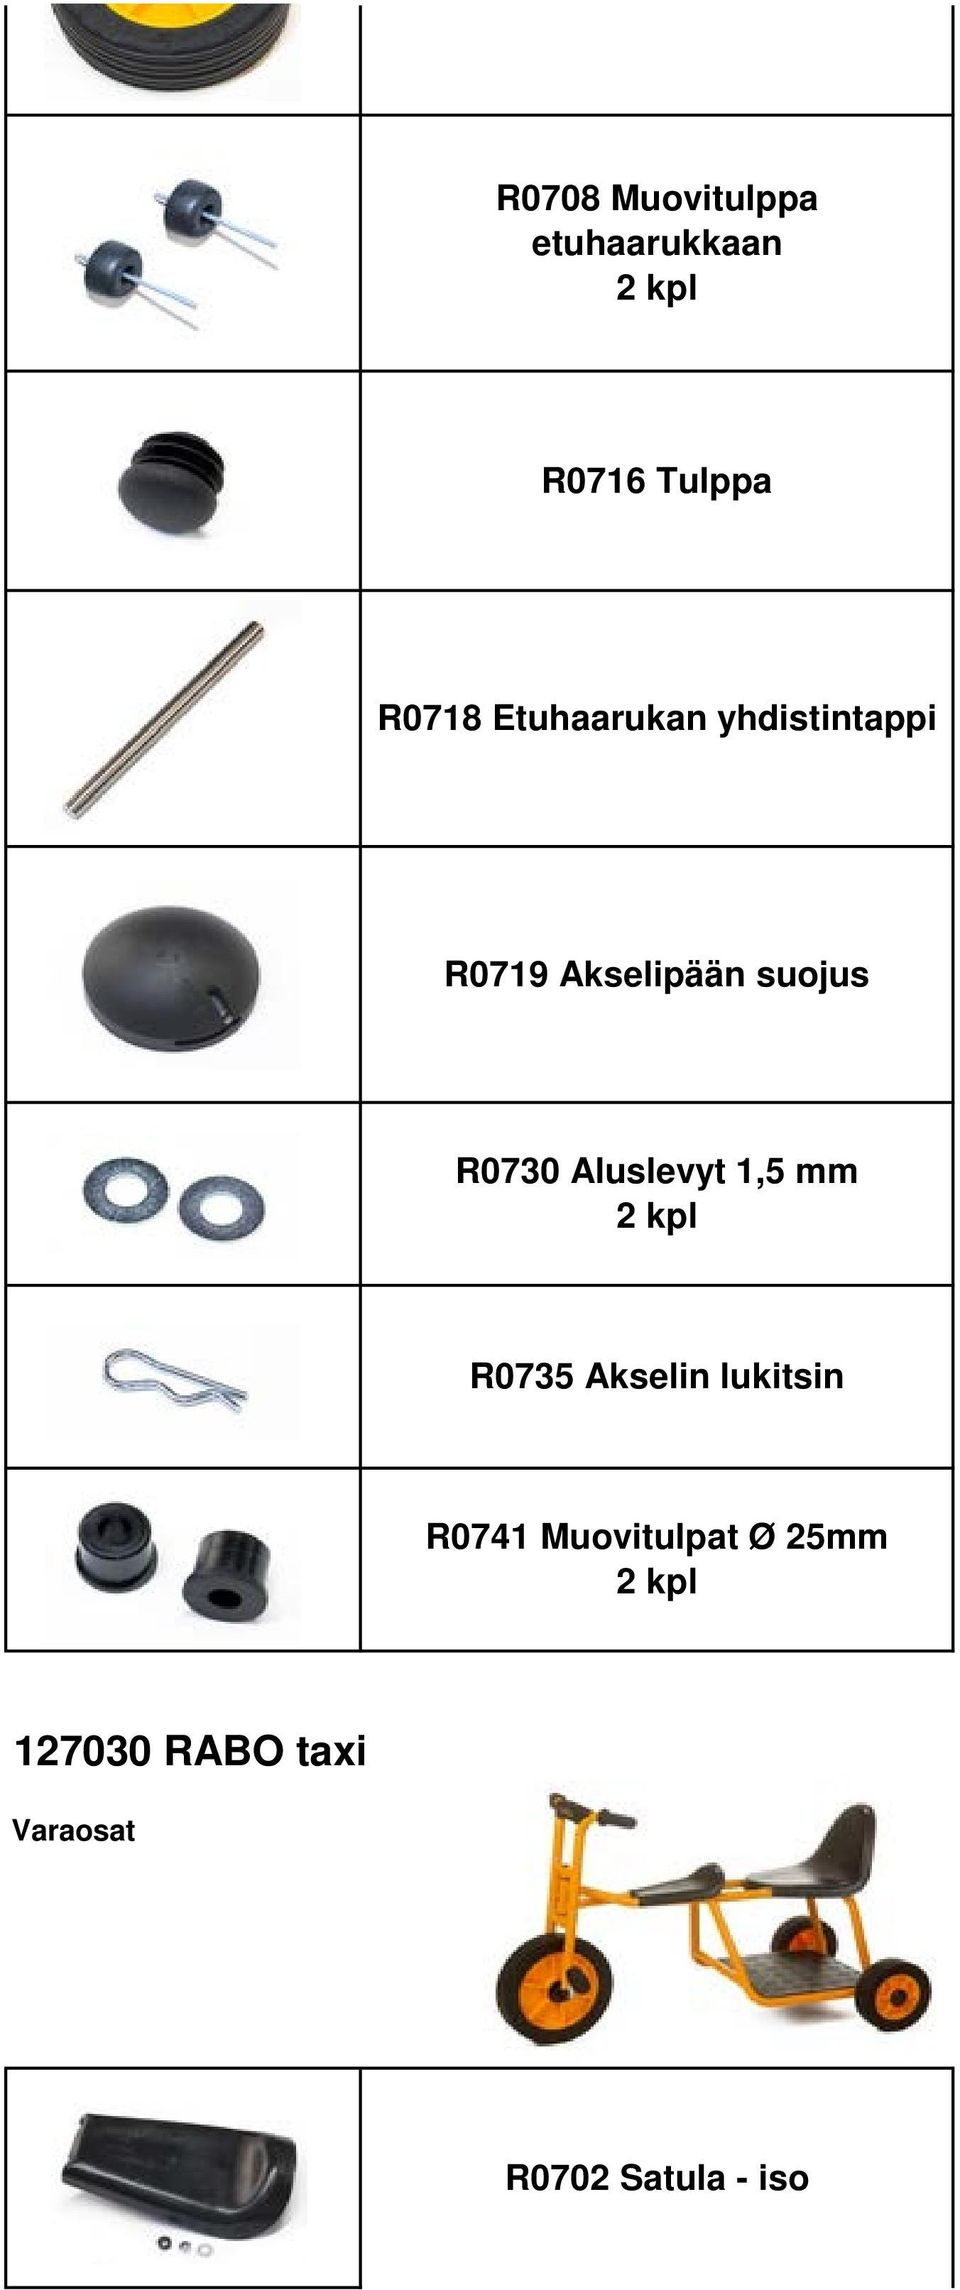 suojus R0730 Aluslevyt 1,5 mm R0741